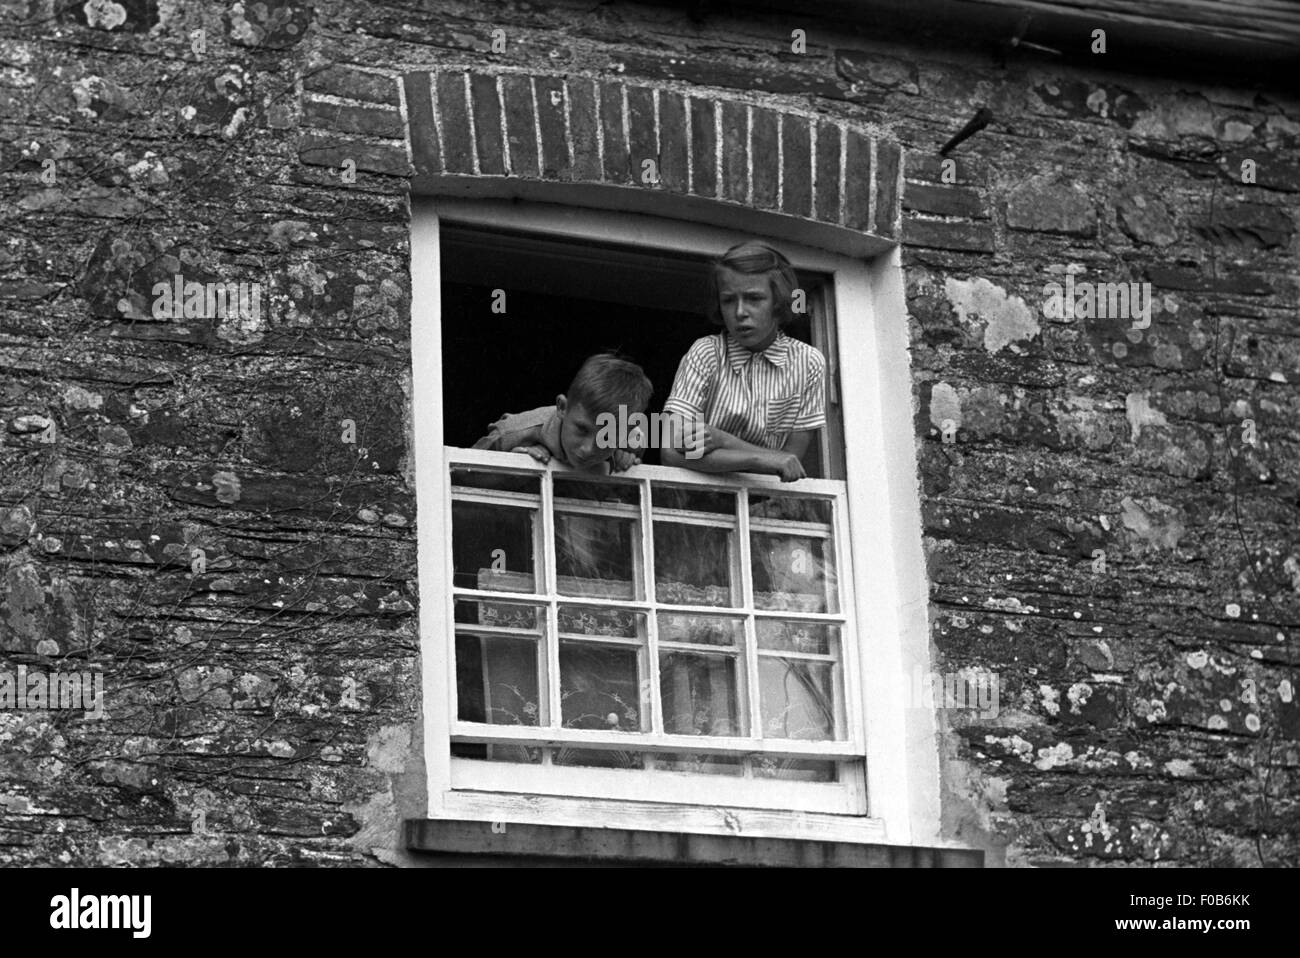 A view from below of a young boy and girl leaning out of an open window. - Stock Image